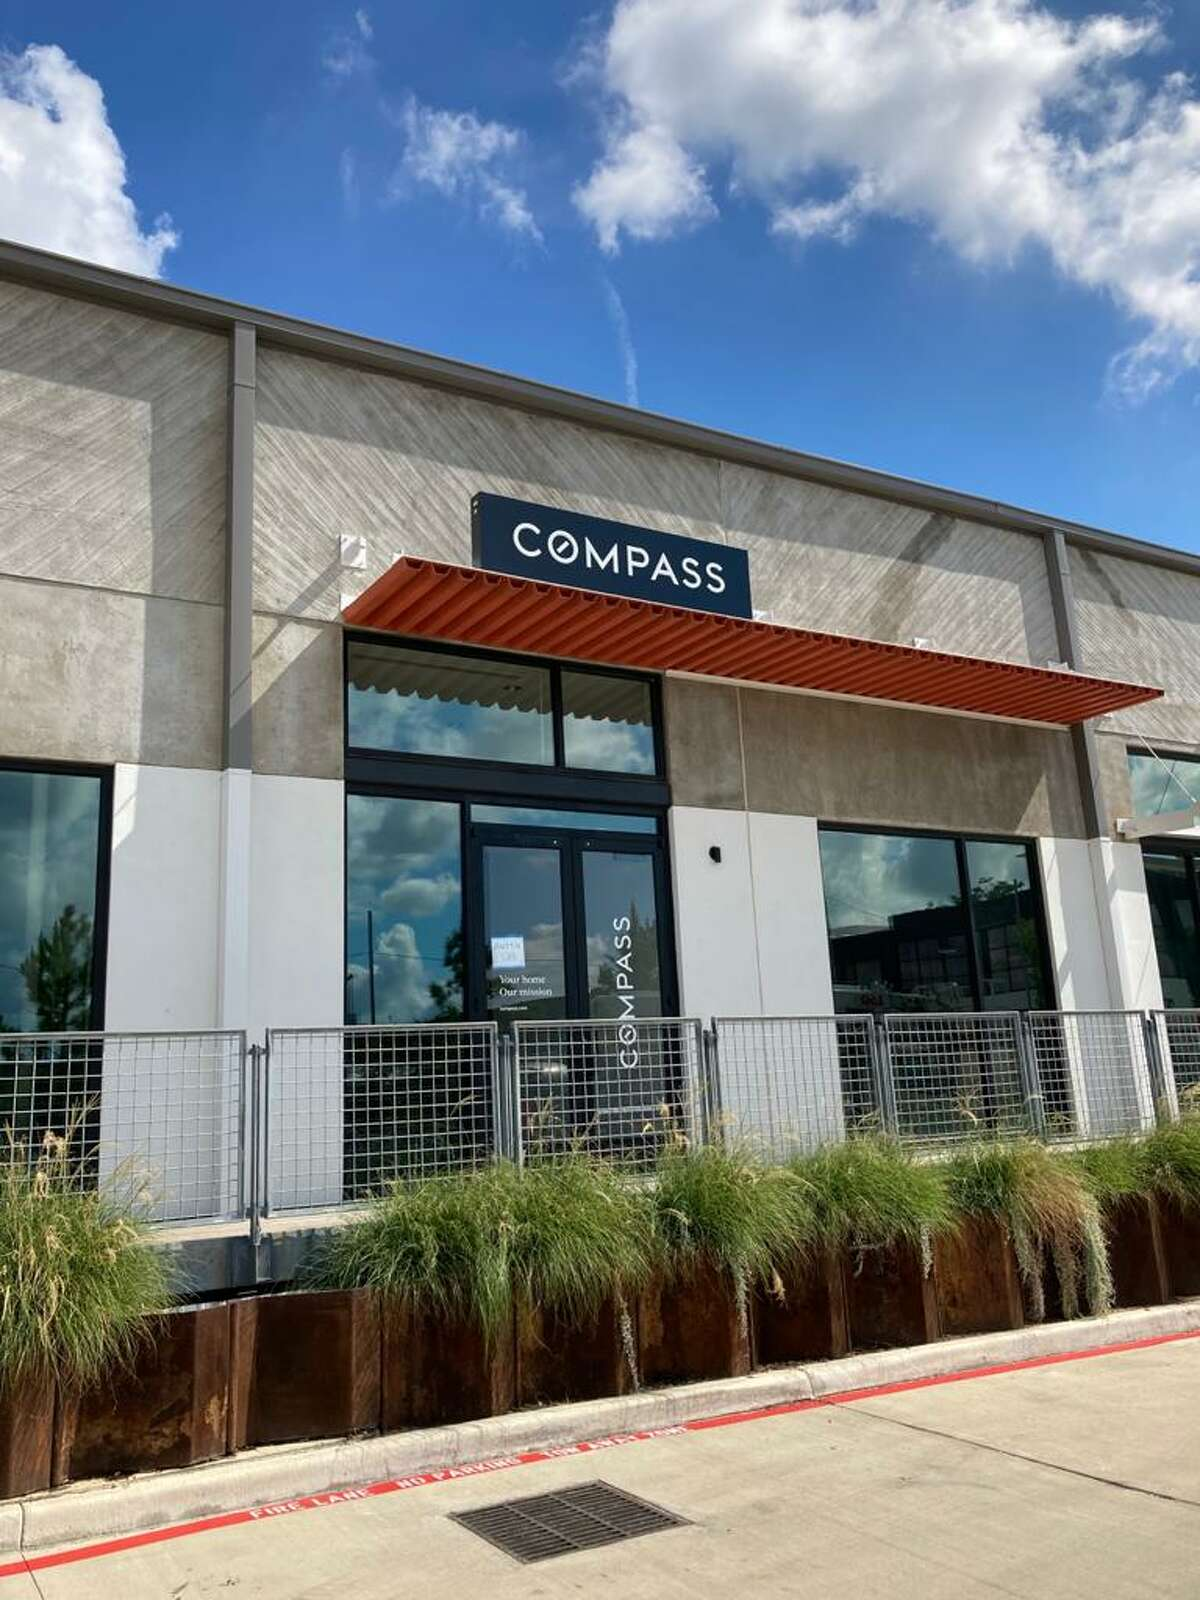 The nationwide brokerage Compass announced Tuesday that - after more than quadrupling its number of Houston area real estate agents - it is opening two new offices in the Heights and Katy.